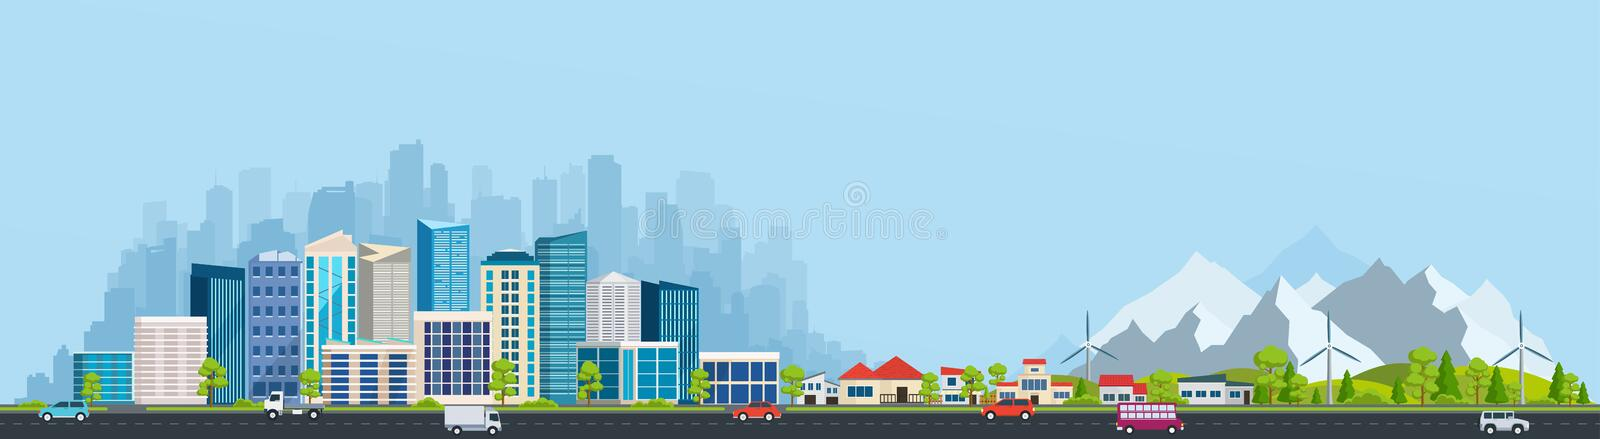 Urban landscape with large modern buildings and suburb. stock illustration